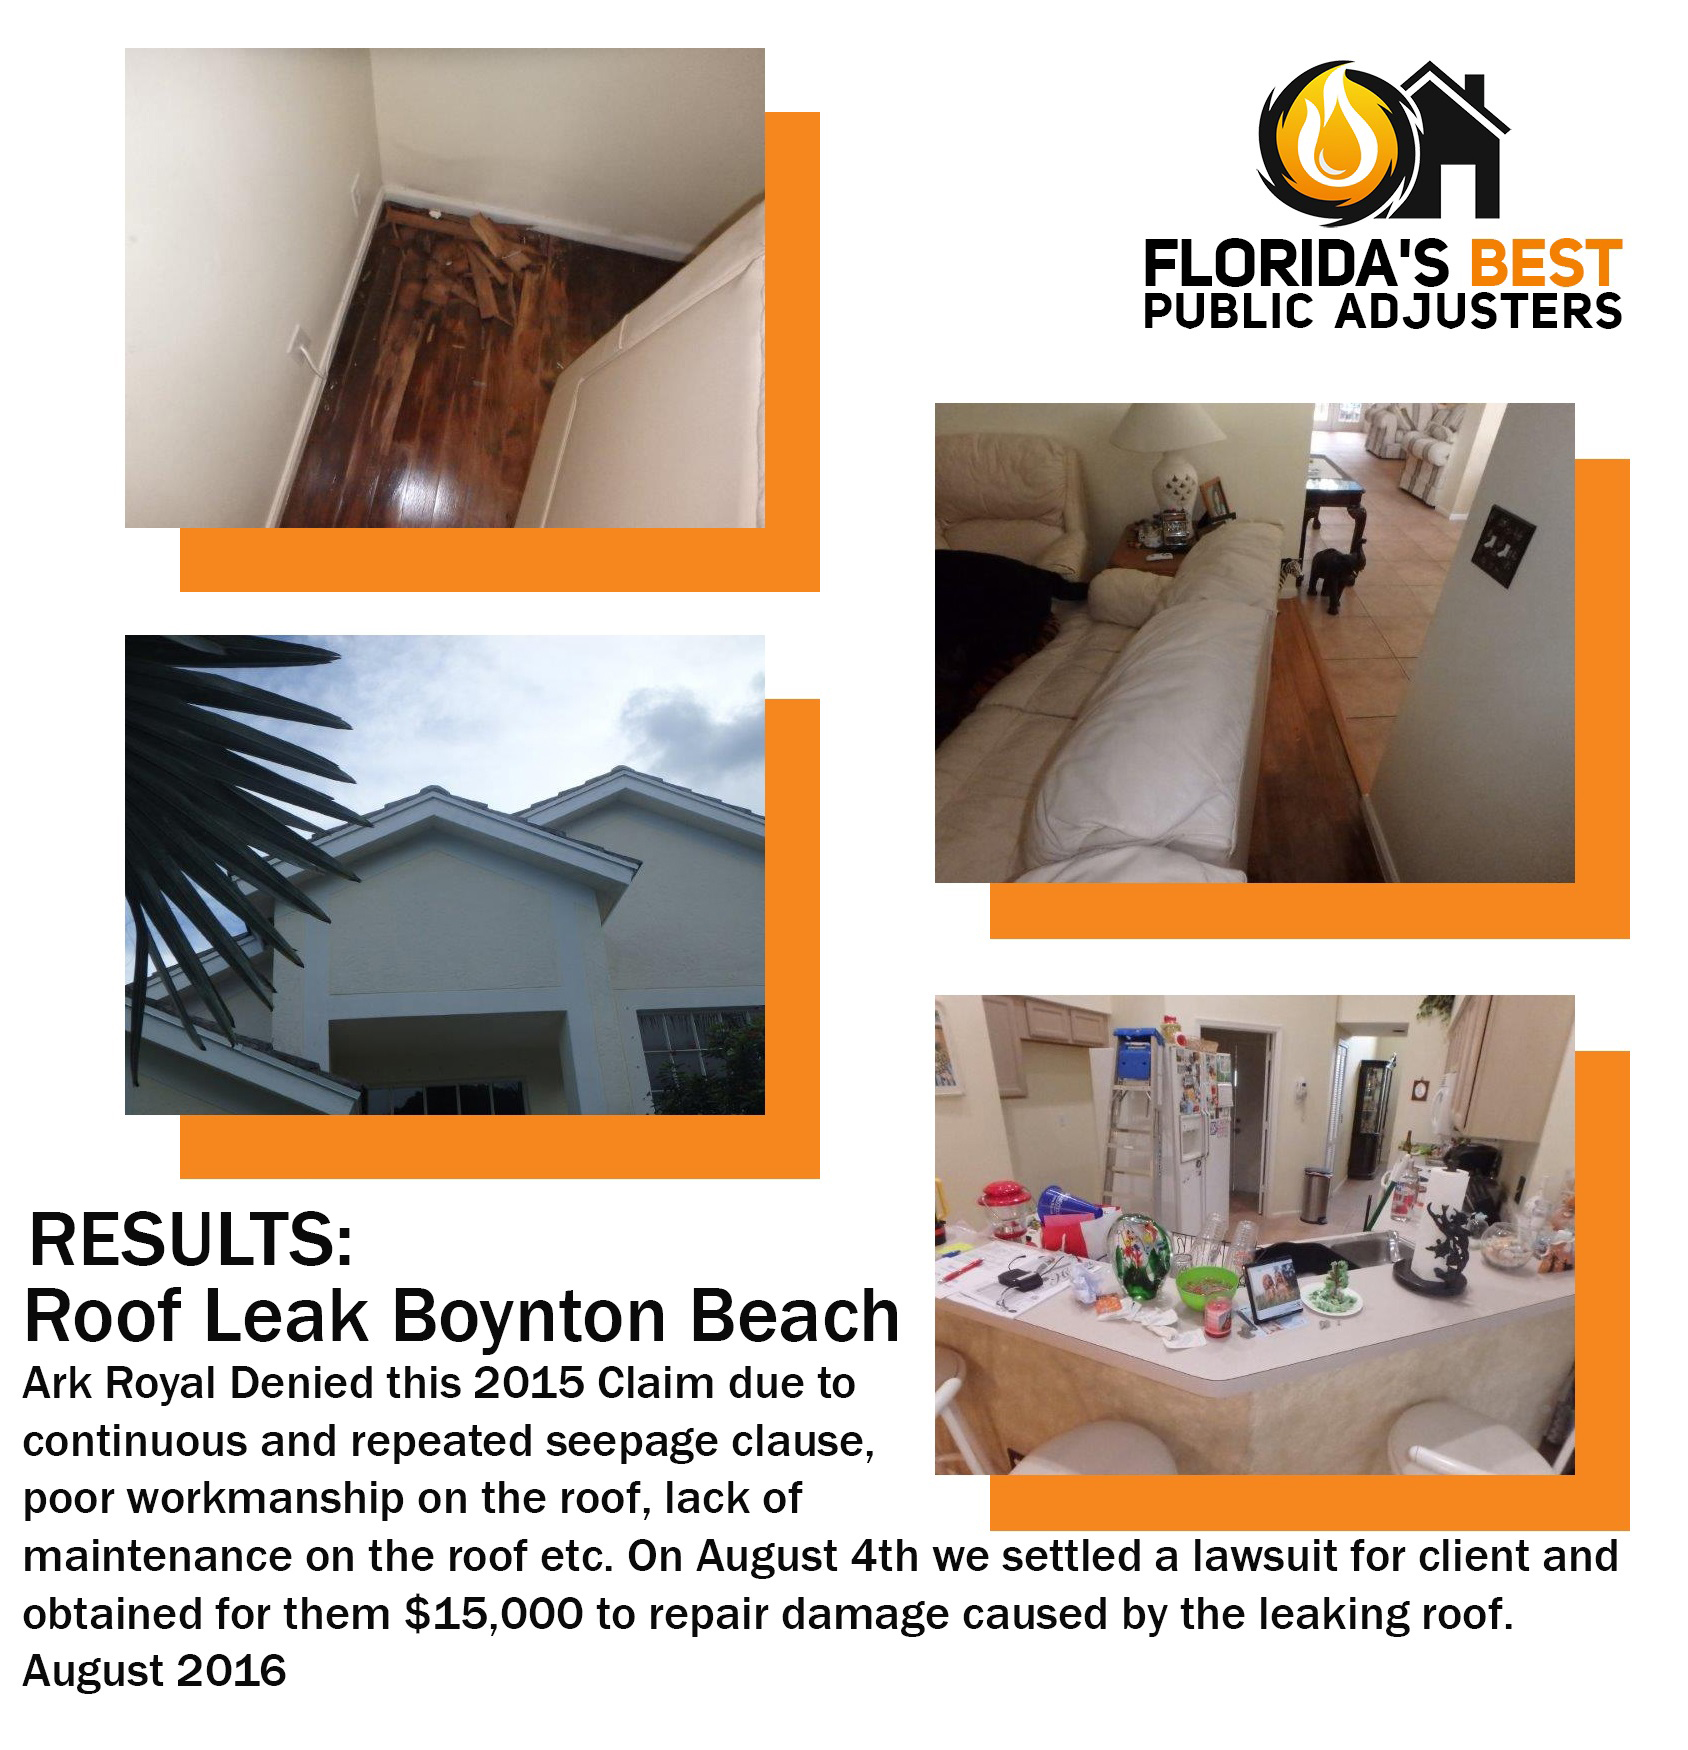 Roof Leak Boynton Beach